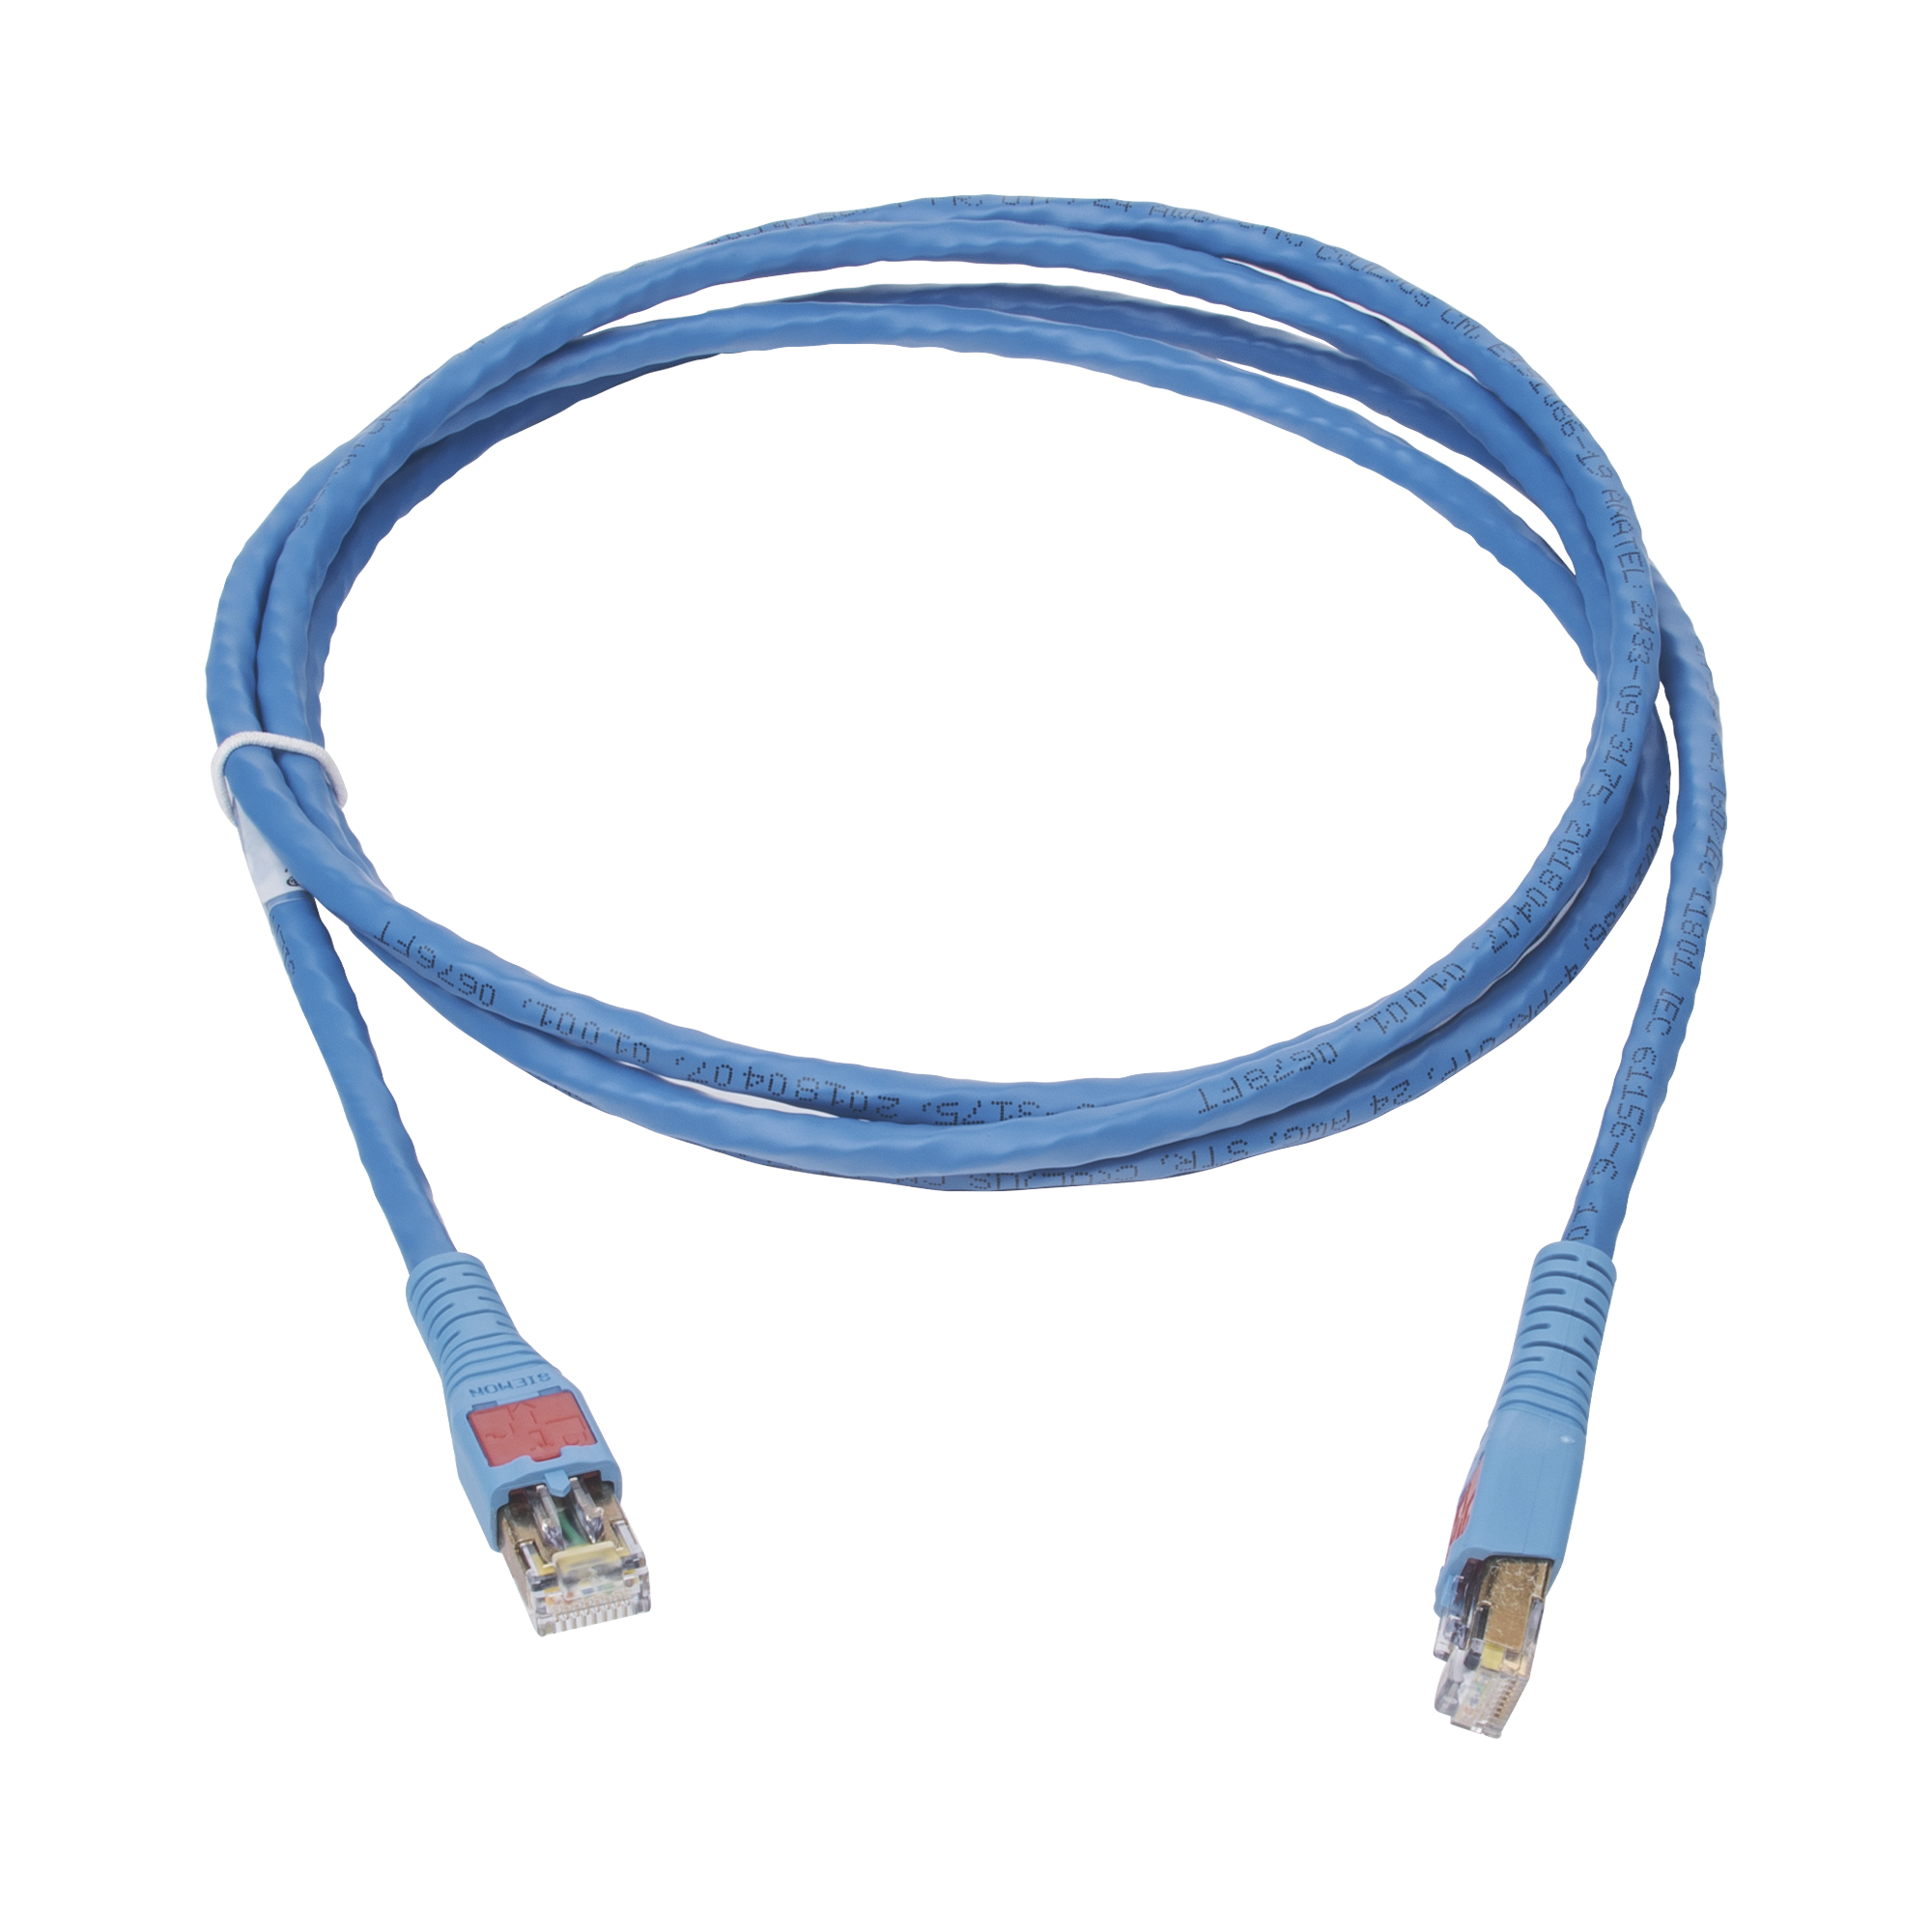 Patch Cord Tipo BladePatch, Desconexión Desde la Bota, Cat6, 7ft, Color Azul, Versión Bulk (Sin Empaque Individual)